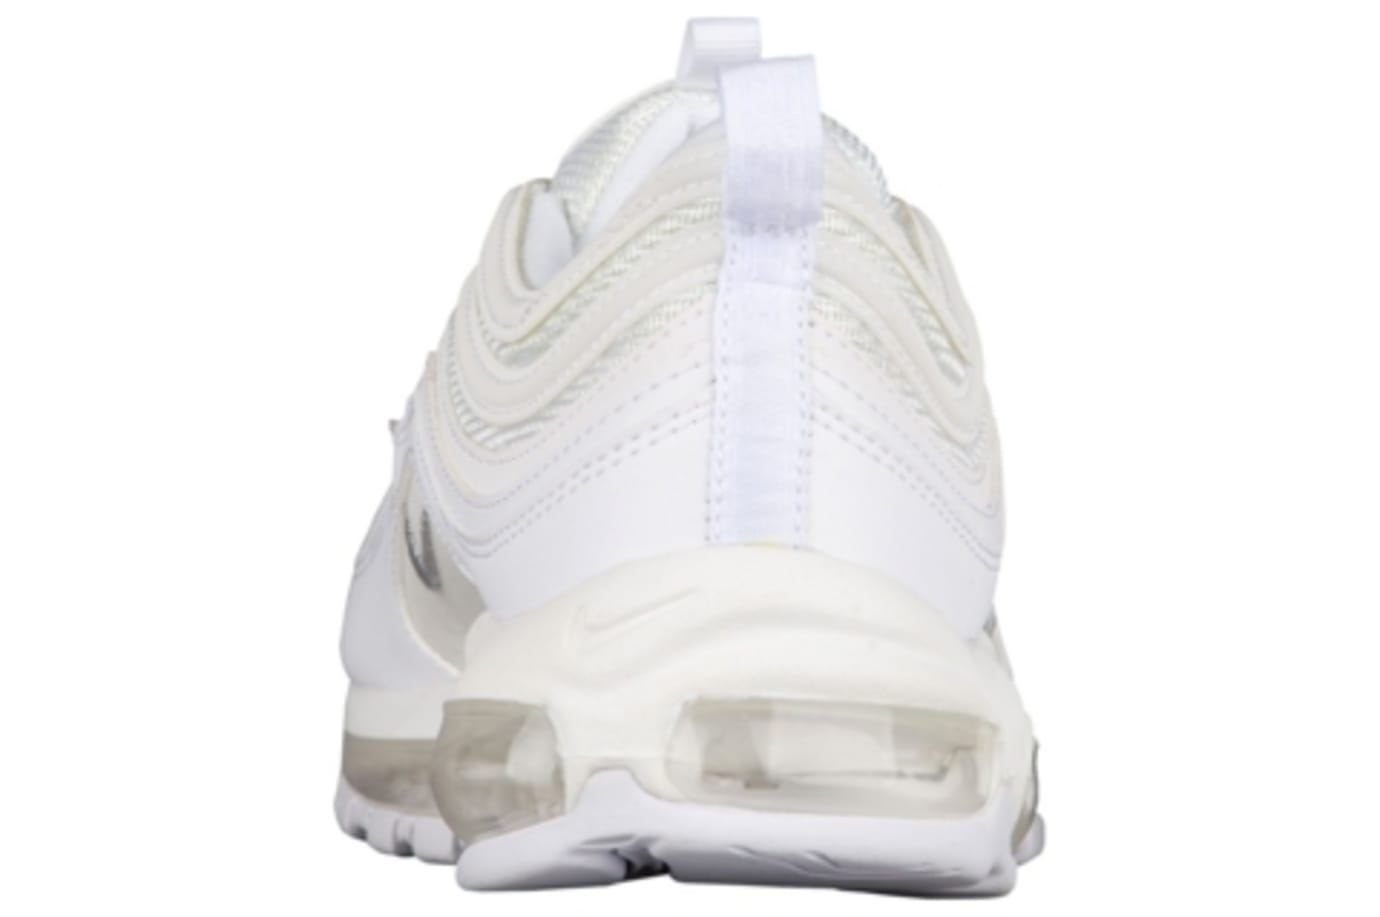 Nike Air Max 97 'White' (Heel)